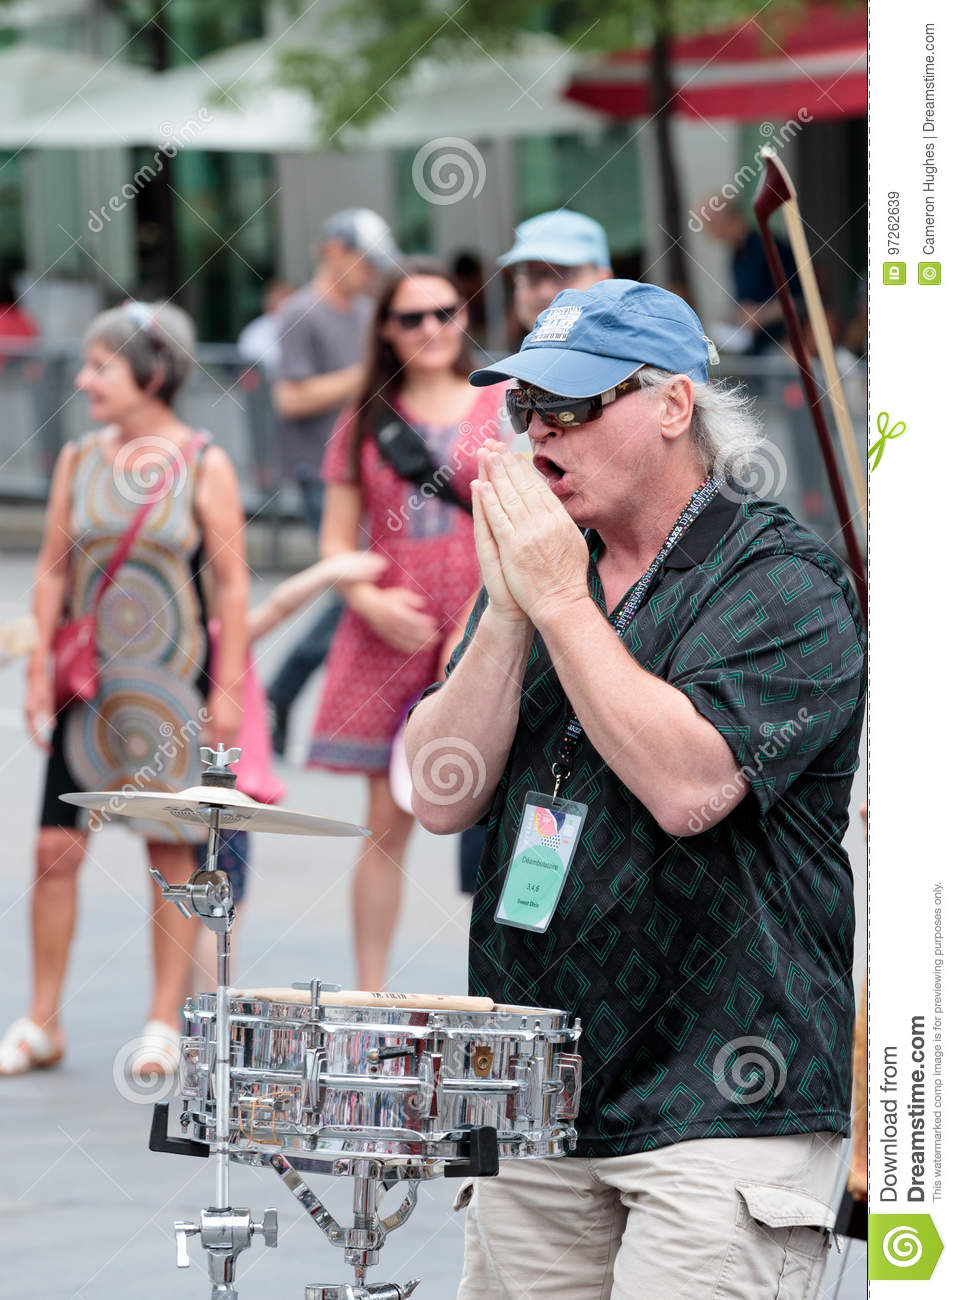 Montreal Jazz Festival 2017 Editorial Stock Image - Image of